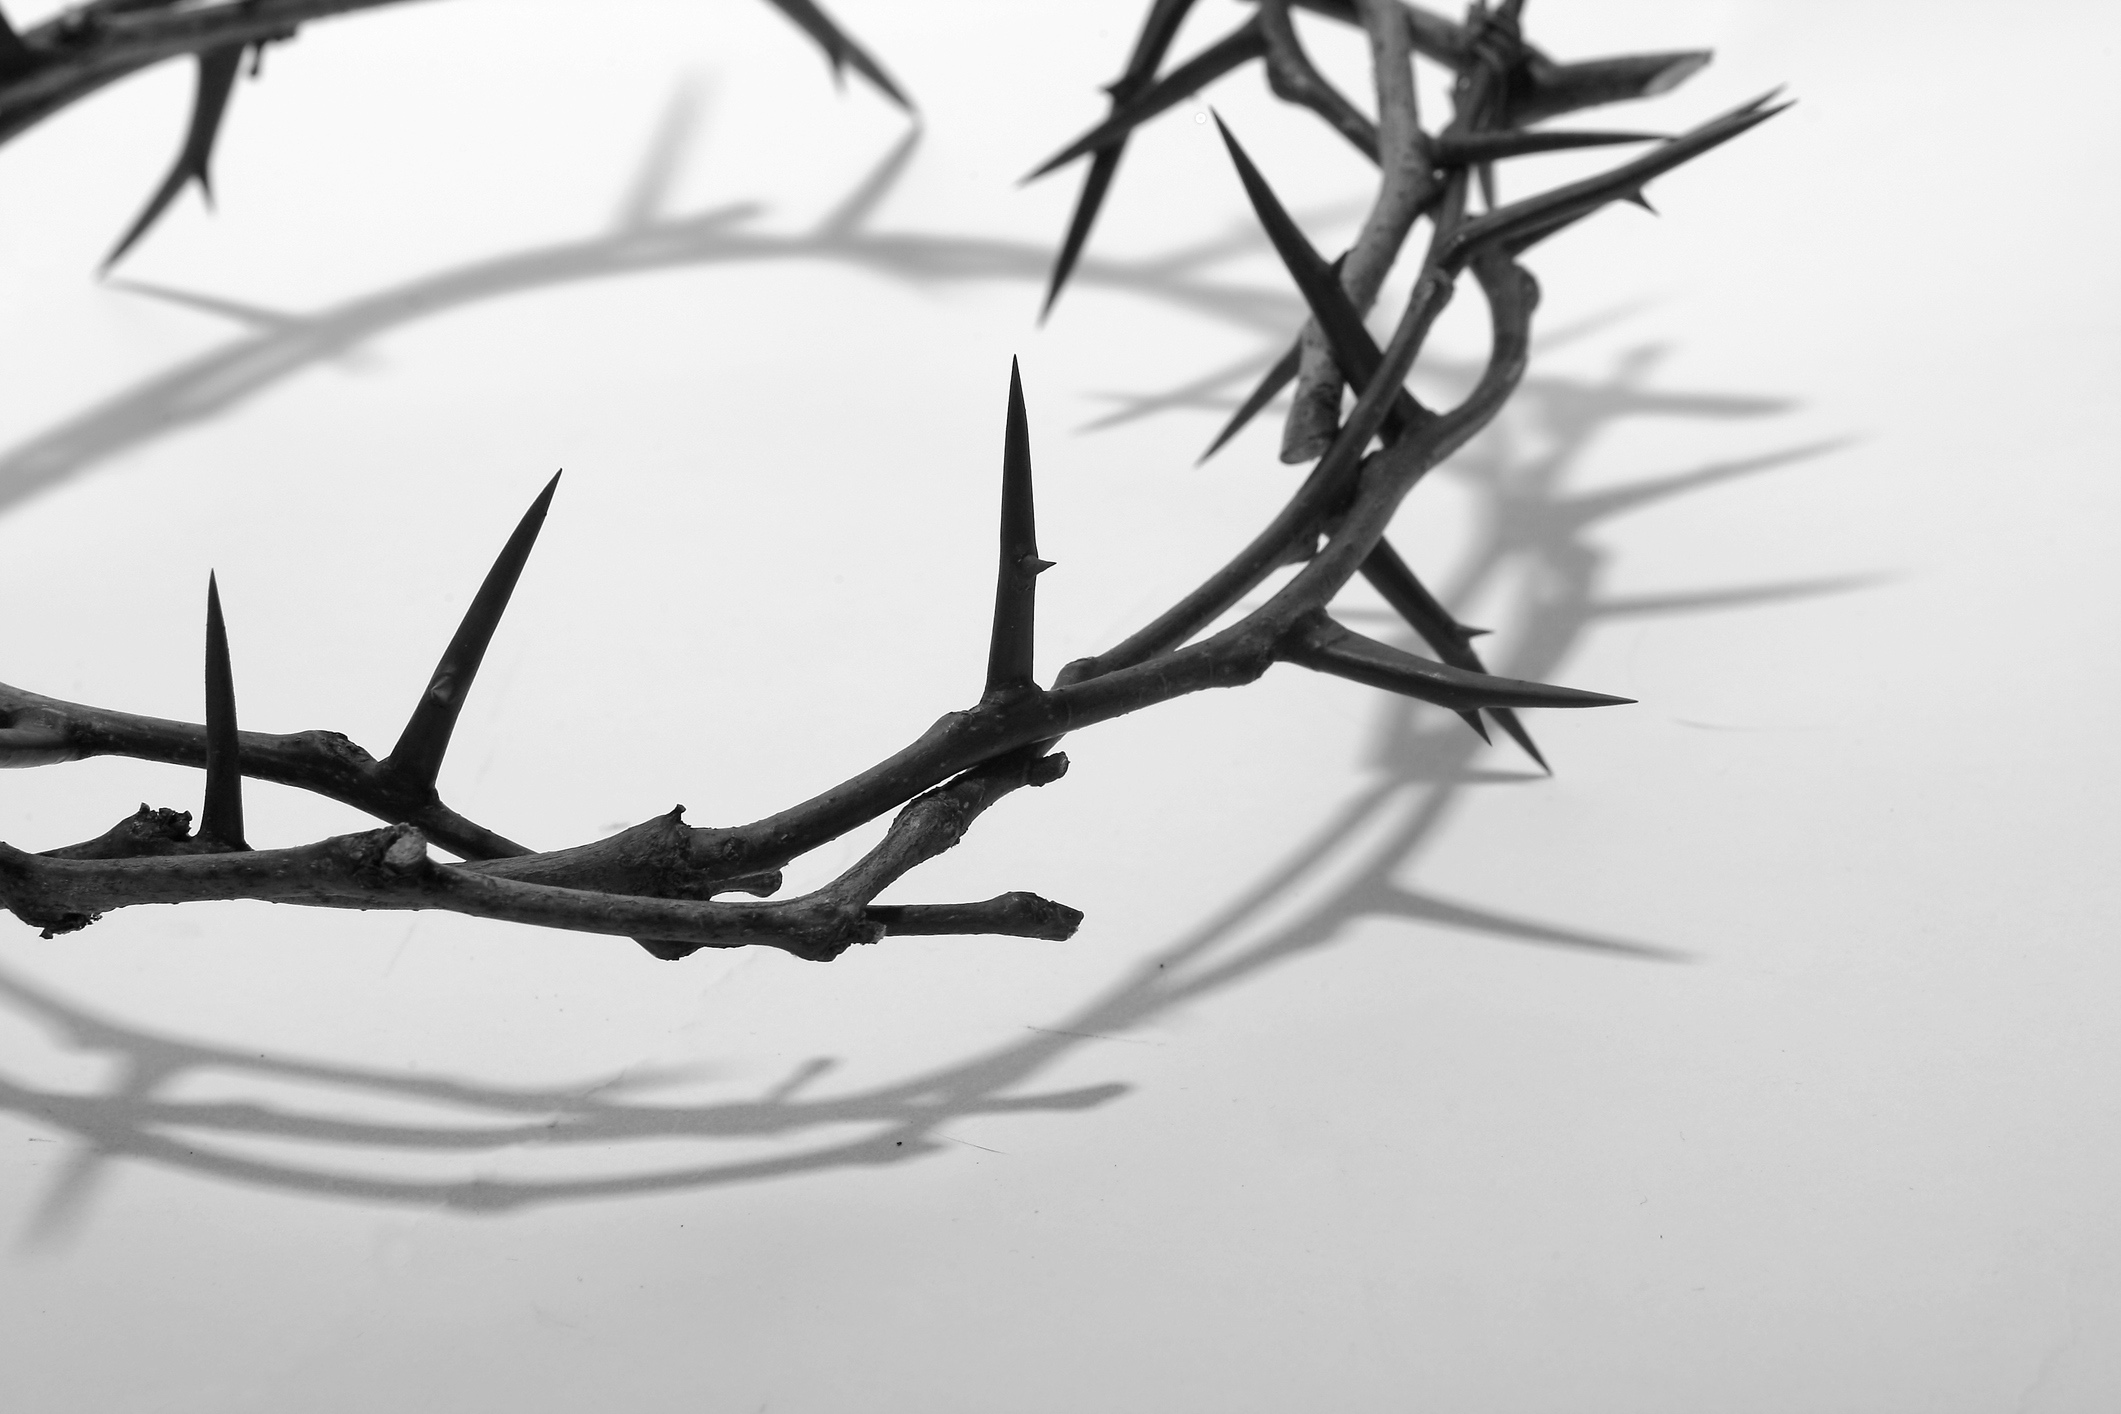 A crown of thorns representing Christian suffering